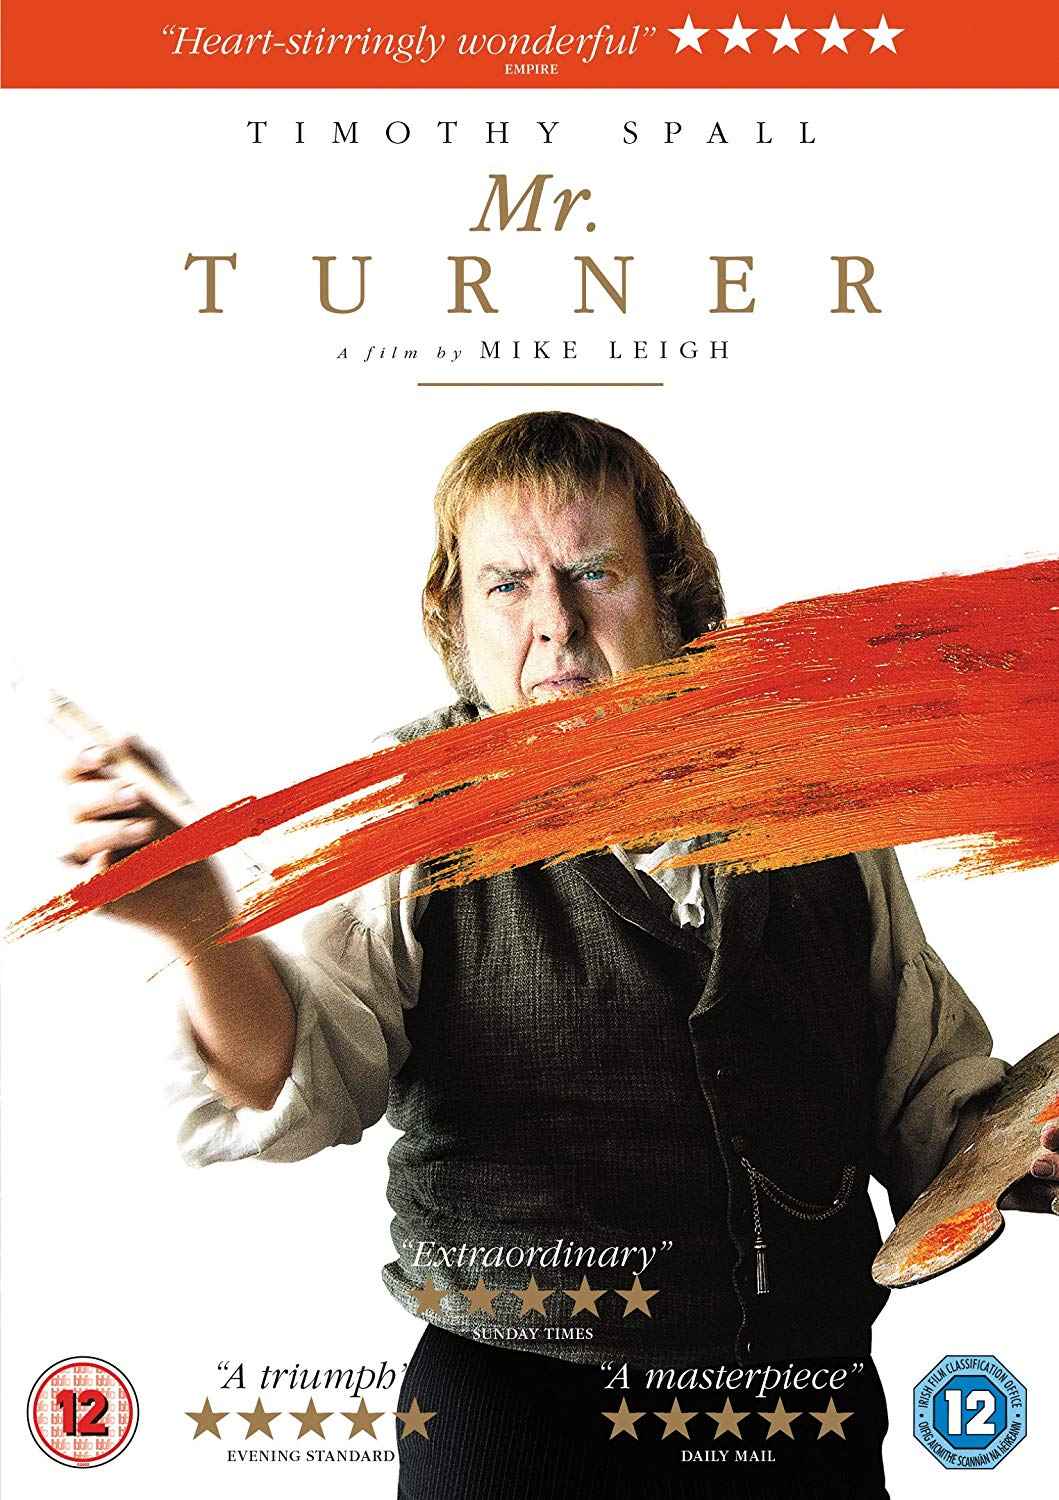 Mr. Turner (2014) - Directed by: Mike LeighStarring: Timothy Spall, Paul Jesson, Dorothy AtkinsonRated: R for Some Sexual ContentRunning Time: 2 h 30 mTMM Score: 3.5 stars out of 5STRENGTHS: Attention to Detail, Acting, Writing, Directing, CinematographyWEAKNESSES: Pacing, Length